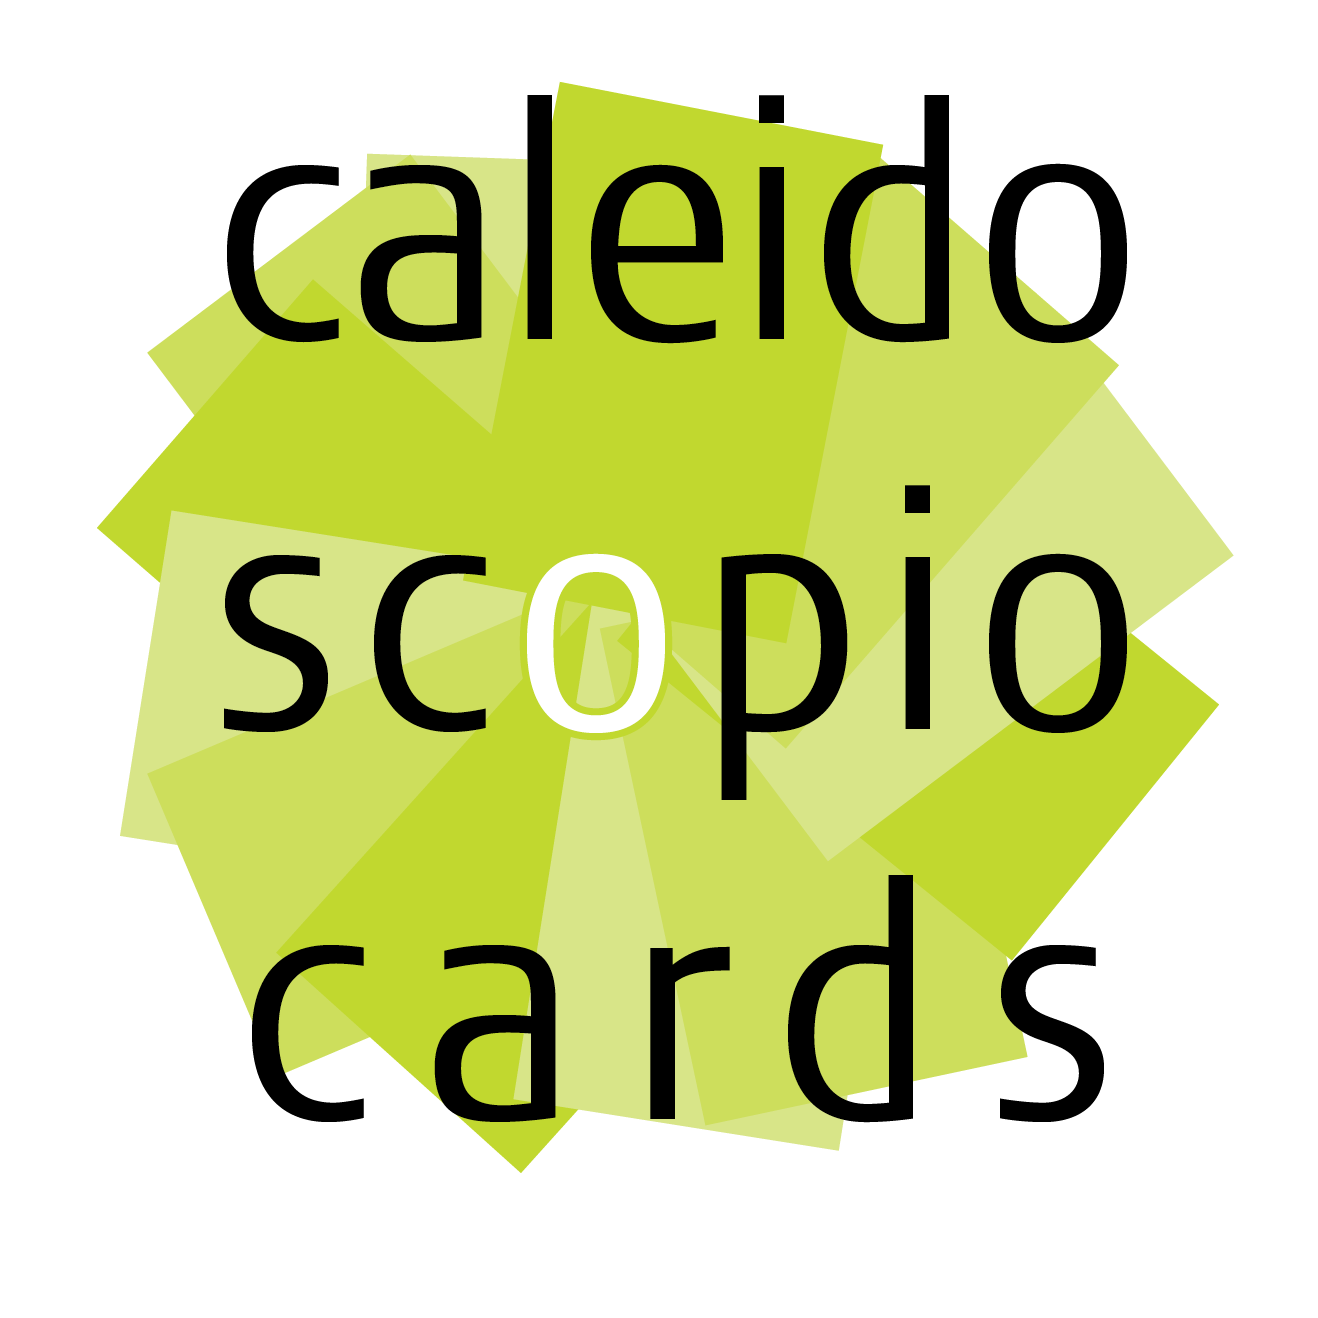 Caleidoscopio Cards